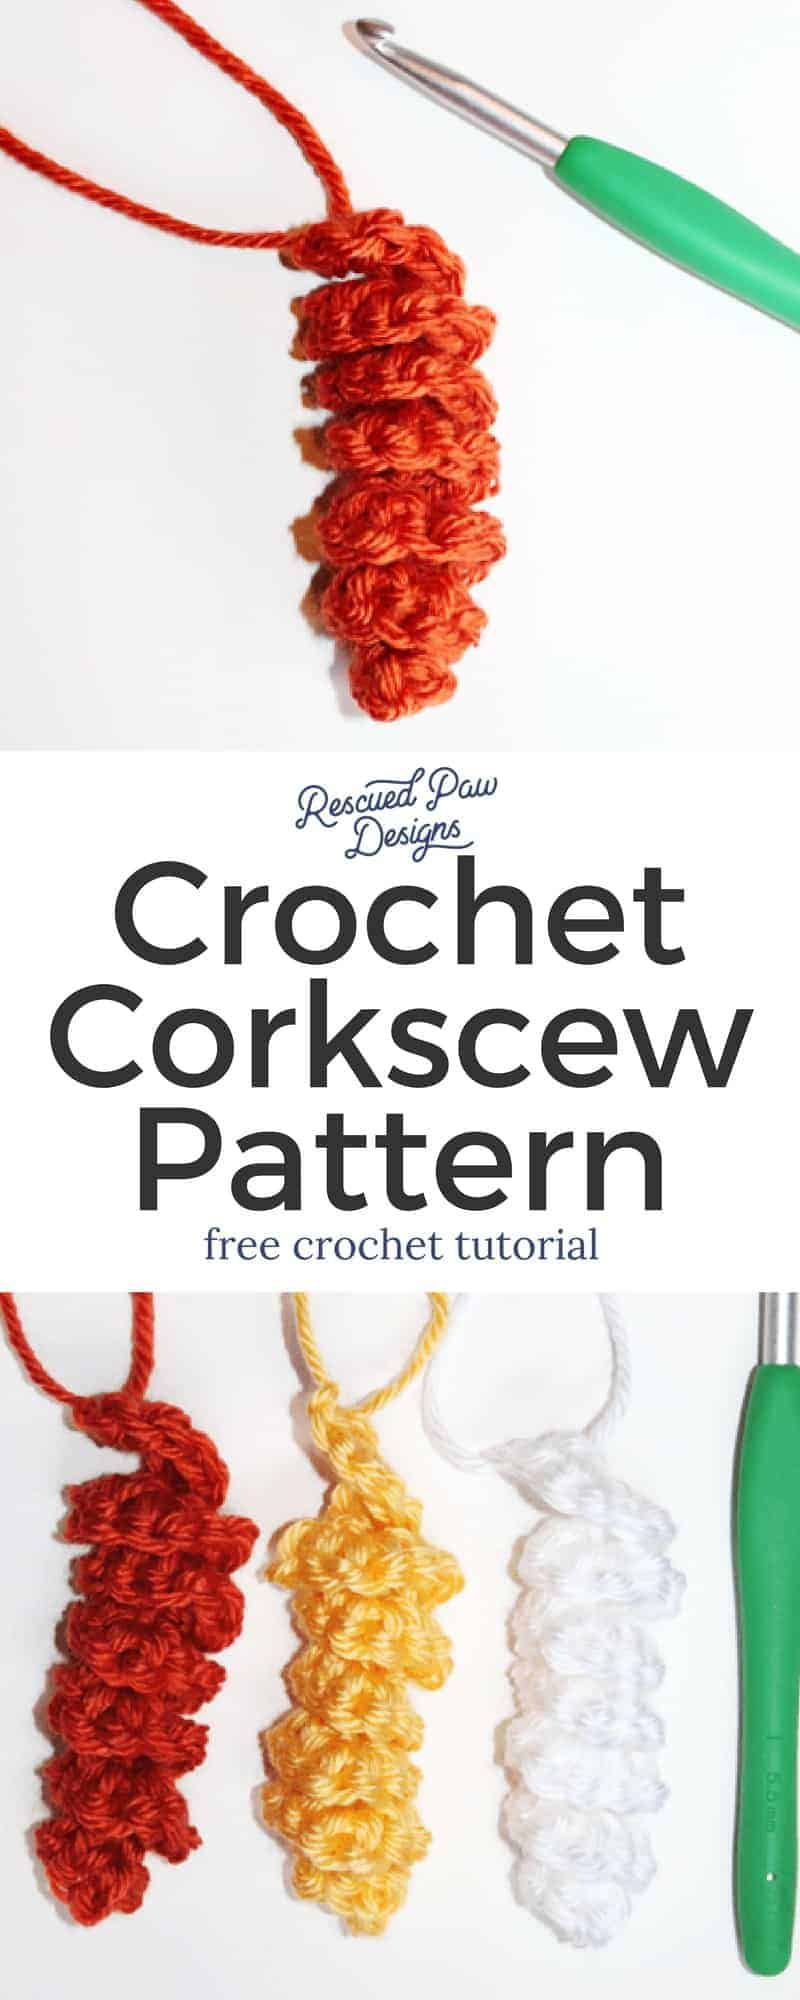 Crochet Corkscrew Tutorial